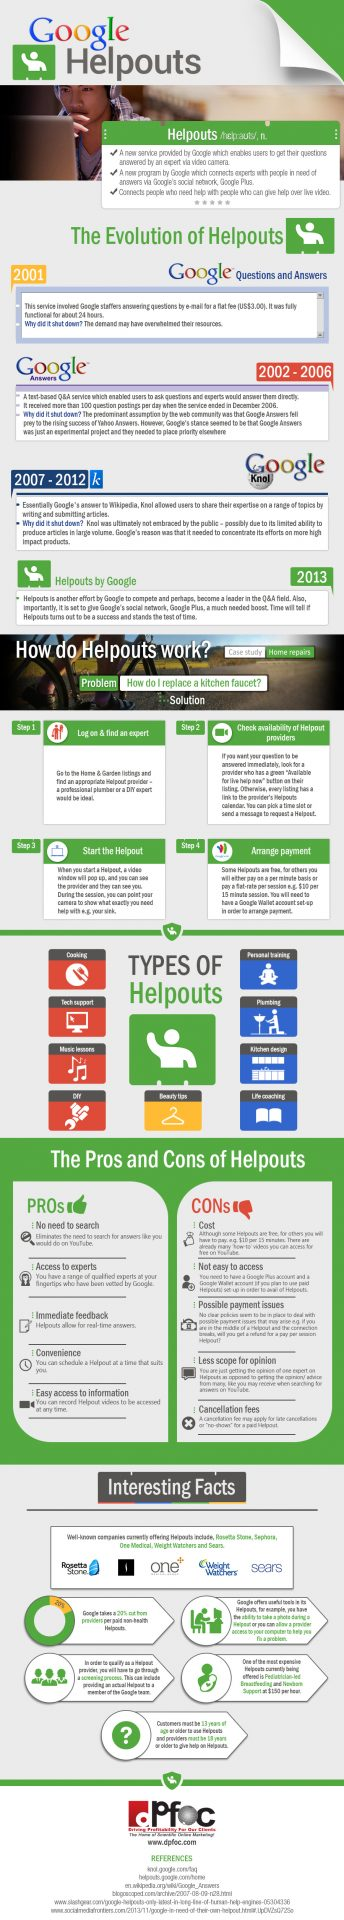 Google Helpout Infographic